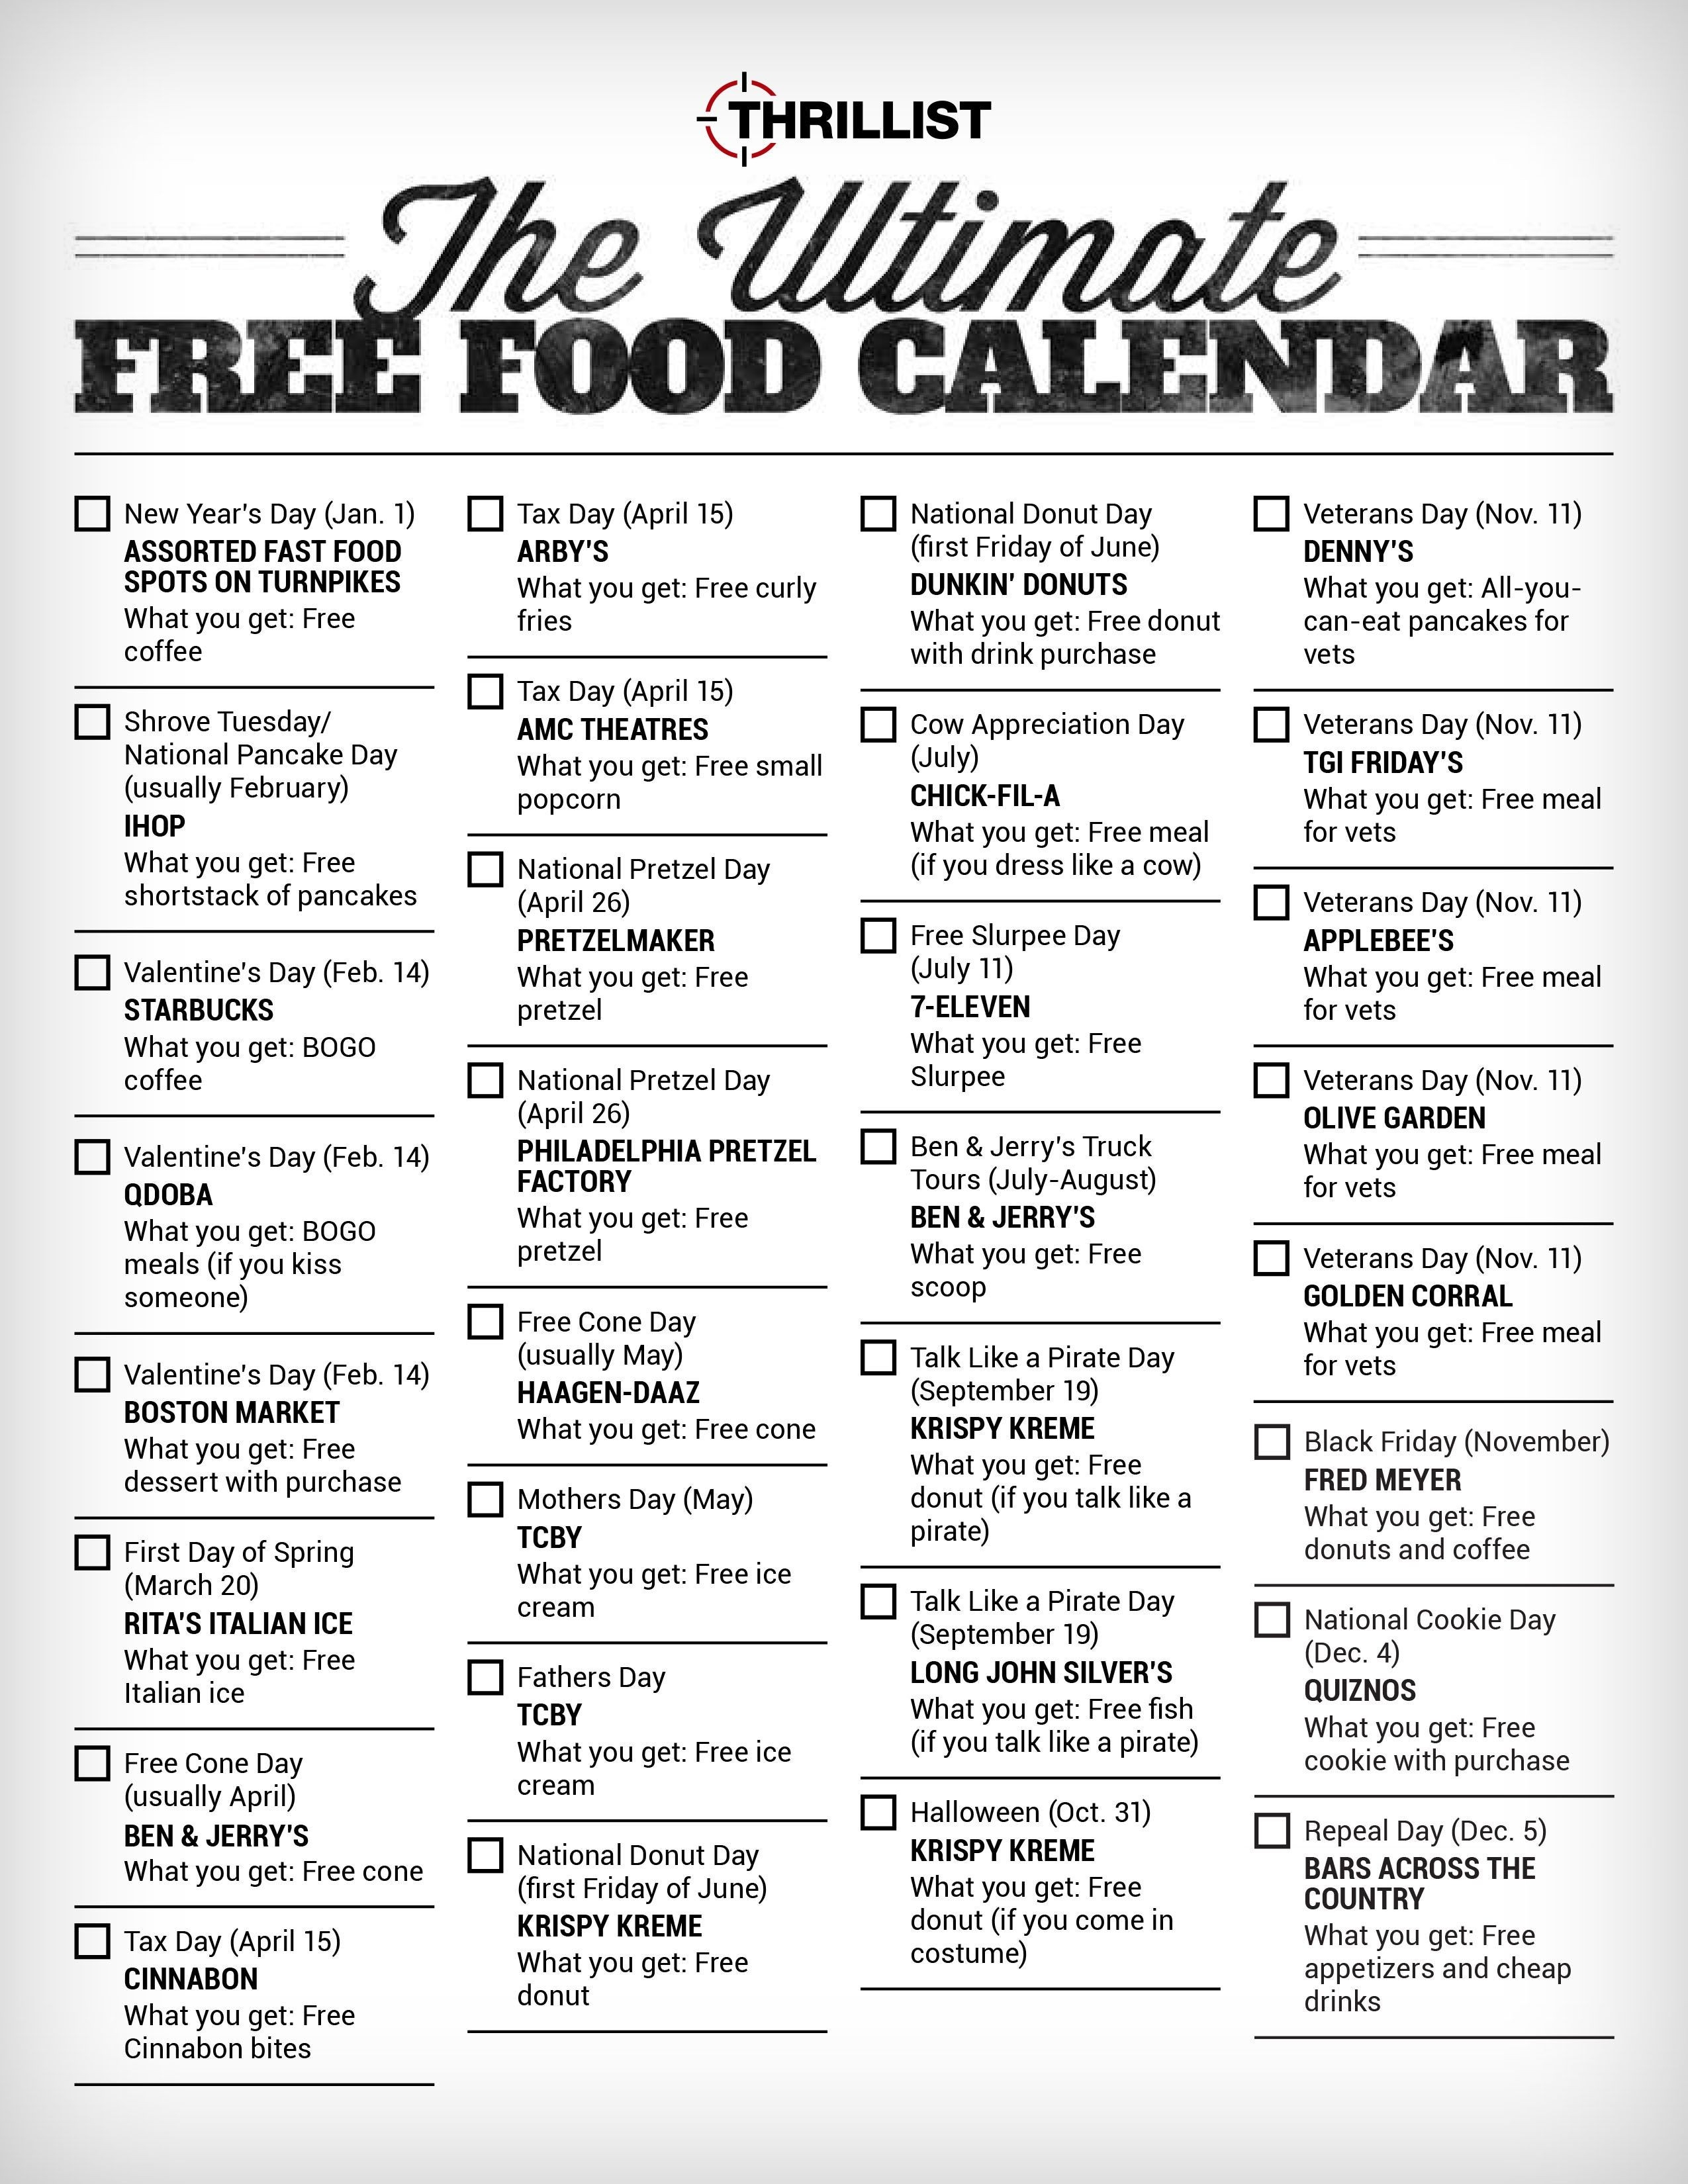 Pin By Esther Kim On Useful Information | National Food Day-Calendar Of National Food Holidays